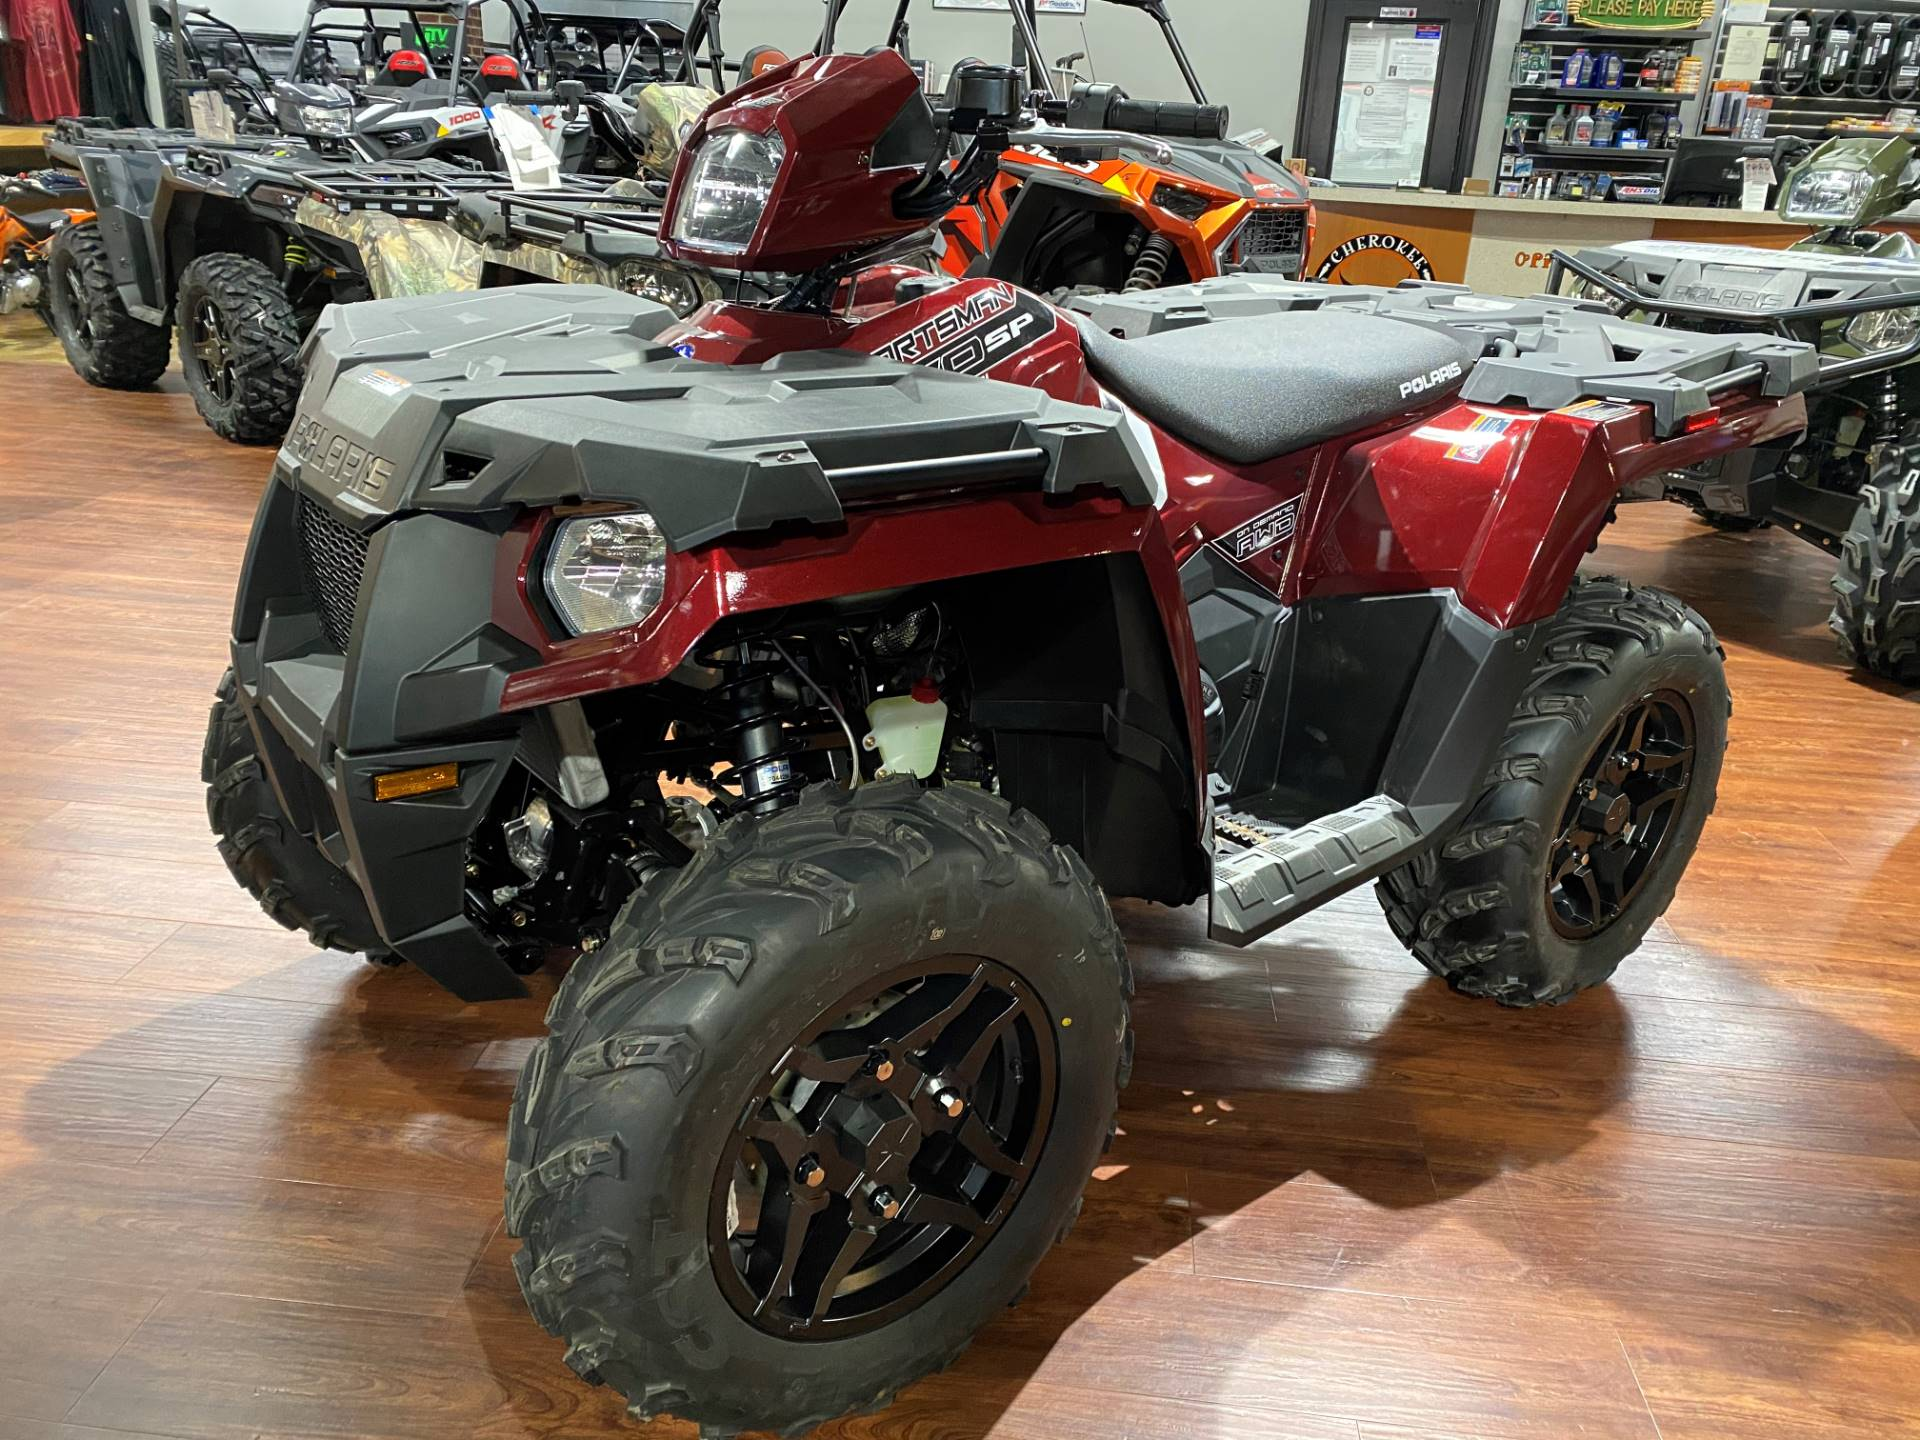 2019 Polaris Sportsman 570 SP - Photo 7